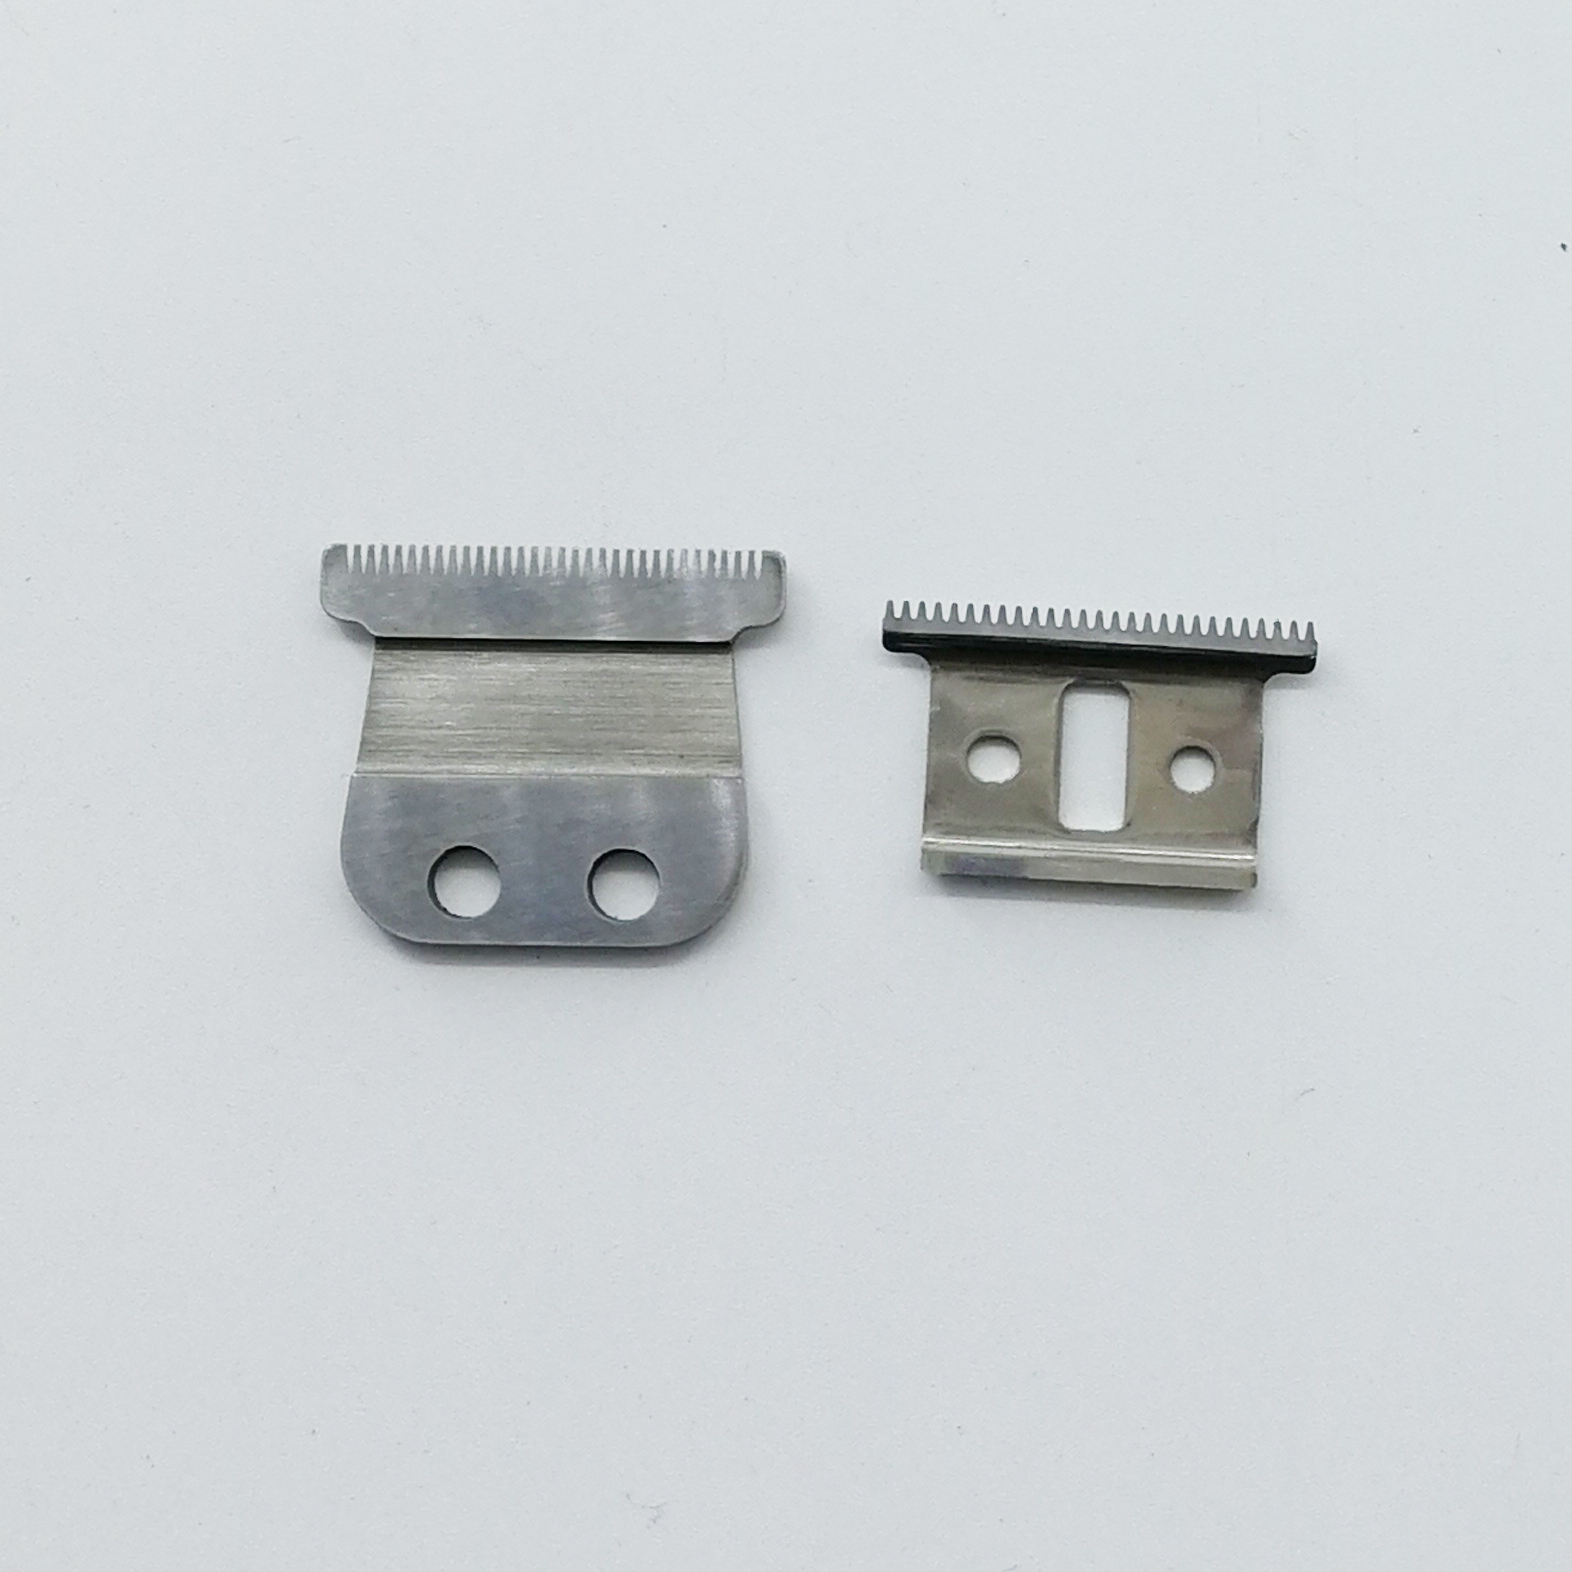 hair clipper blade fit Fits Andis clipper image